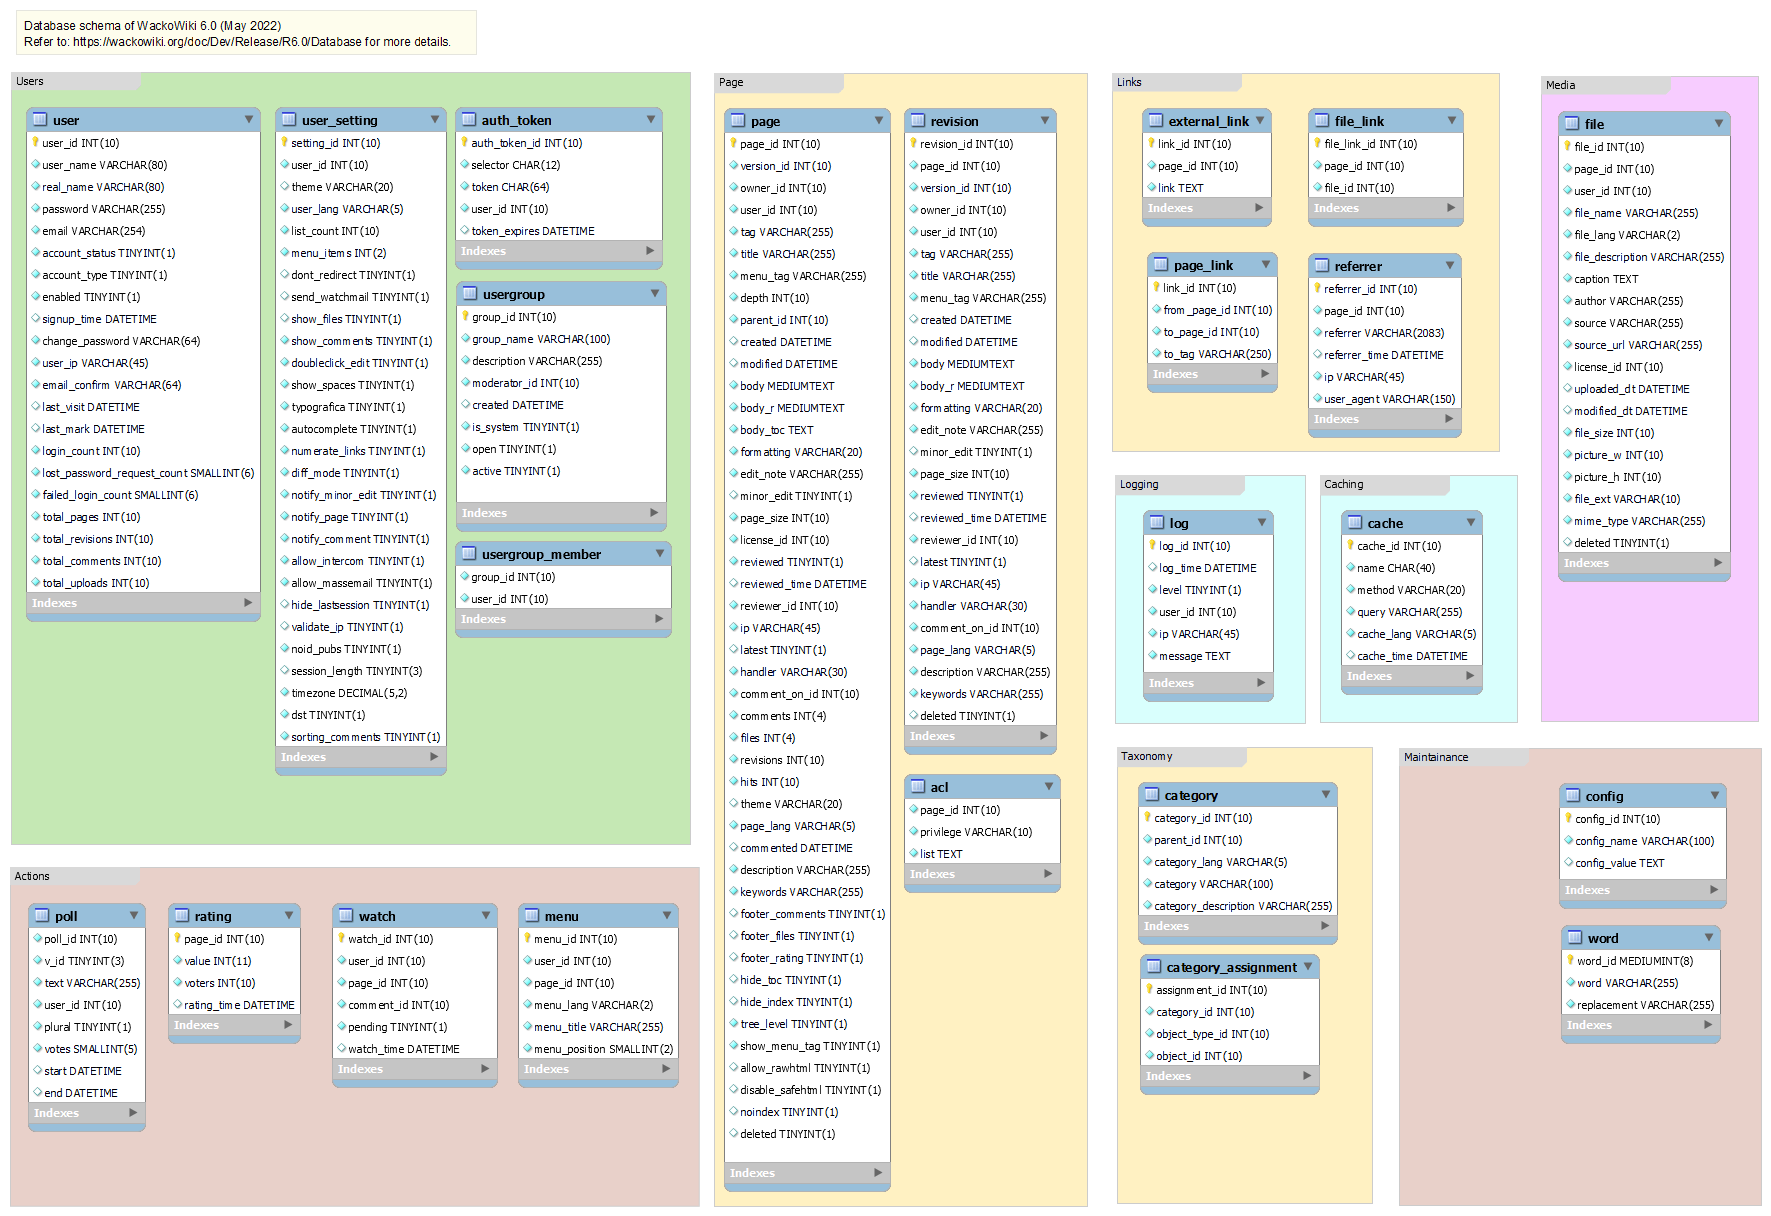 table structure of WackoWiki R6.0 database